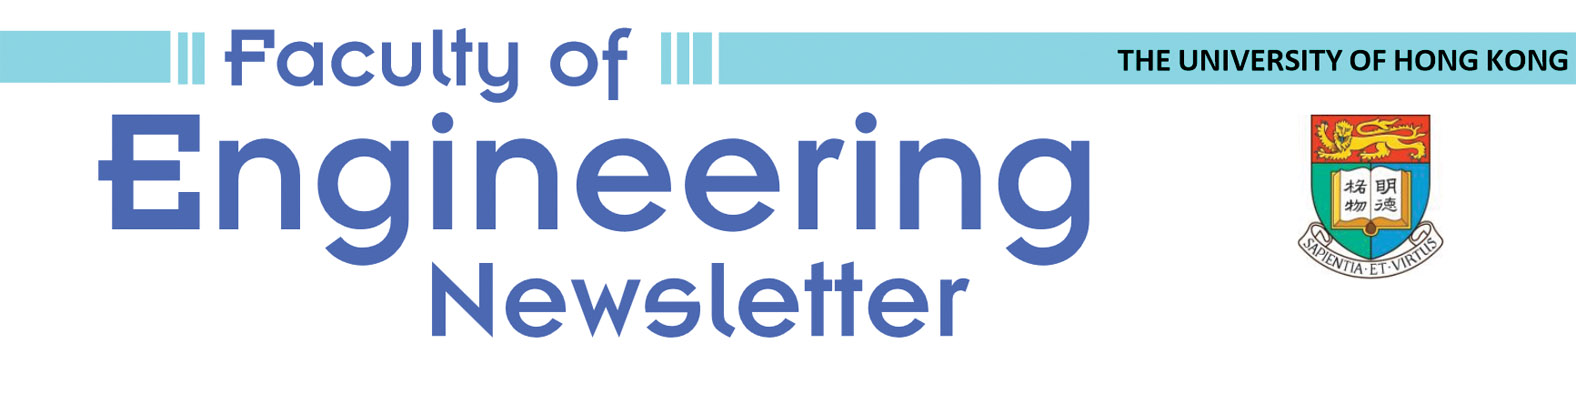 Faculty of Engineering Newsletter